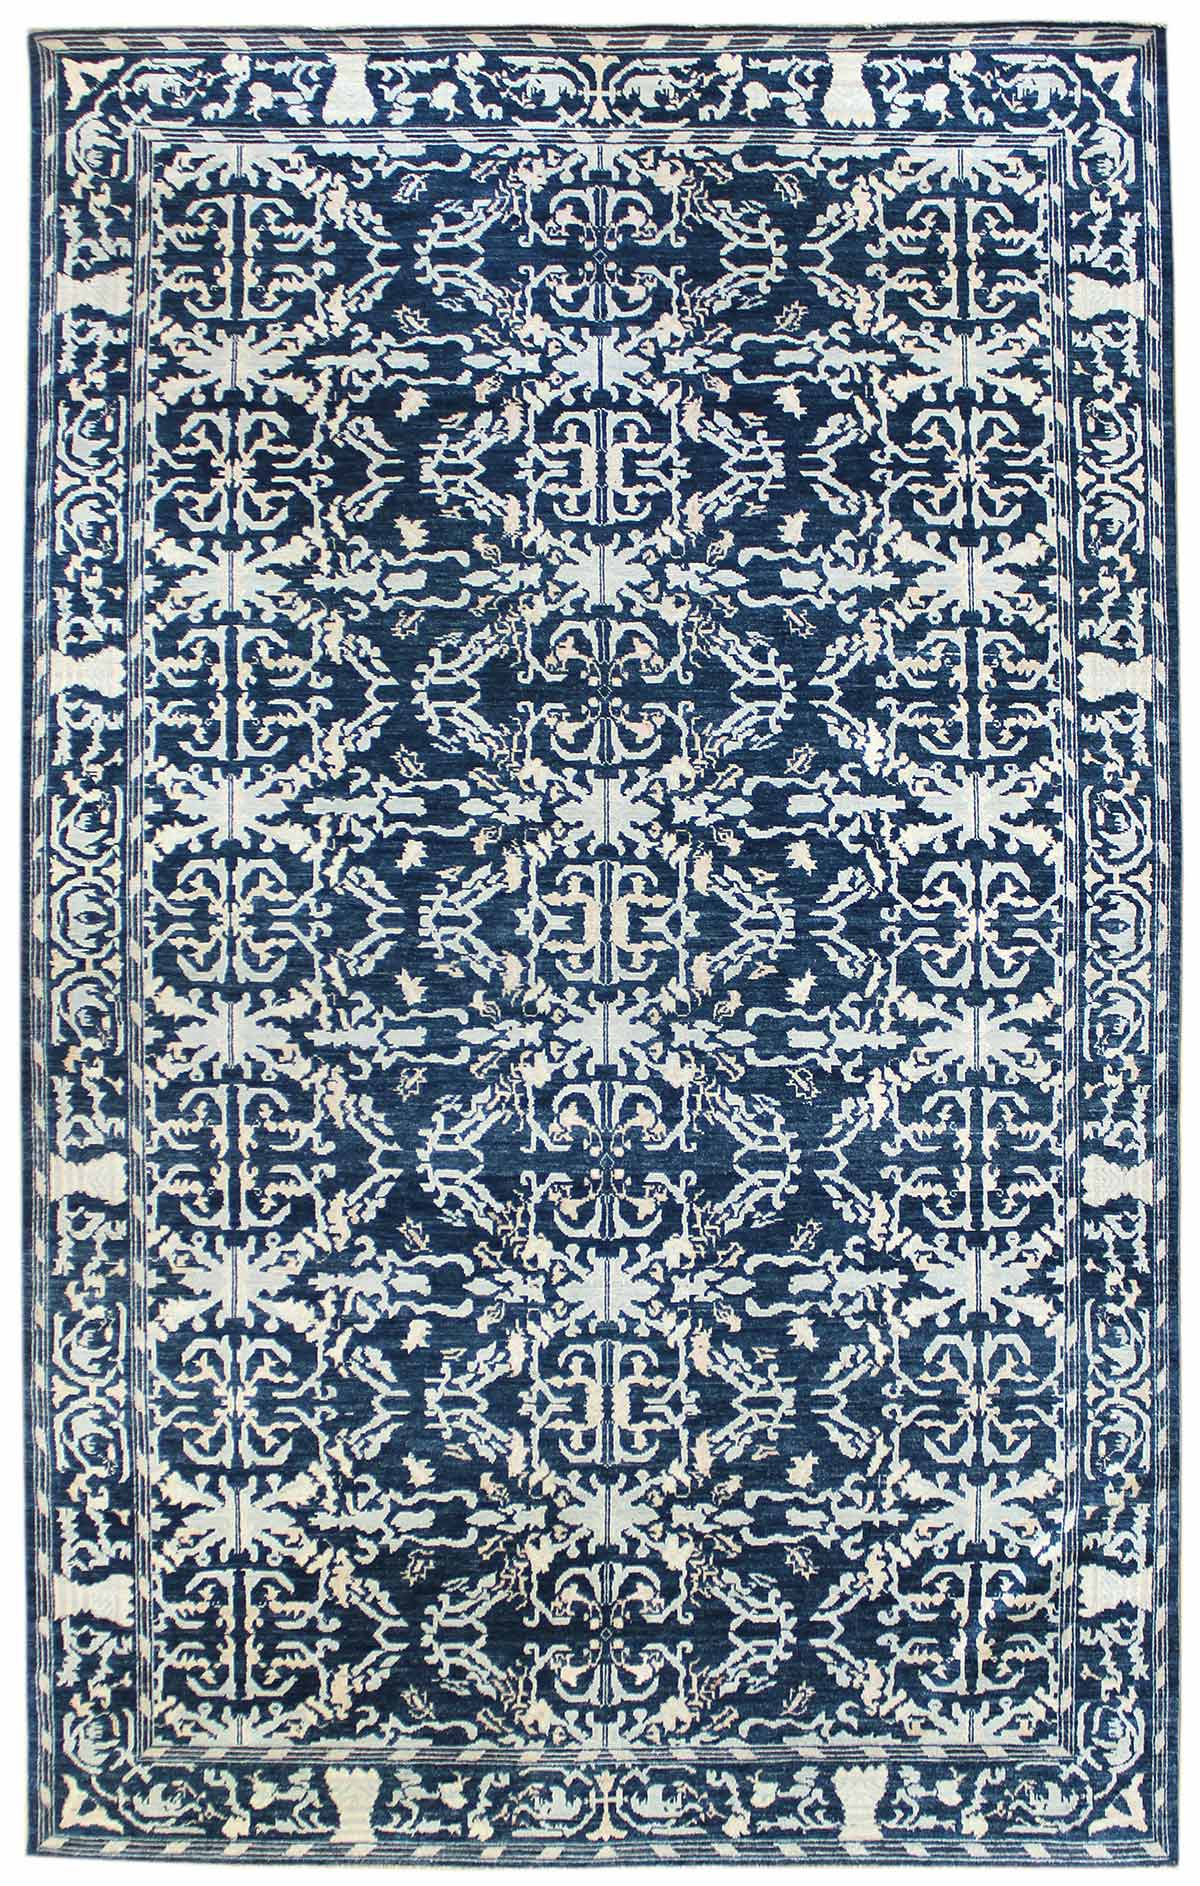 Cuenca Handwoven Traditional Rug